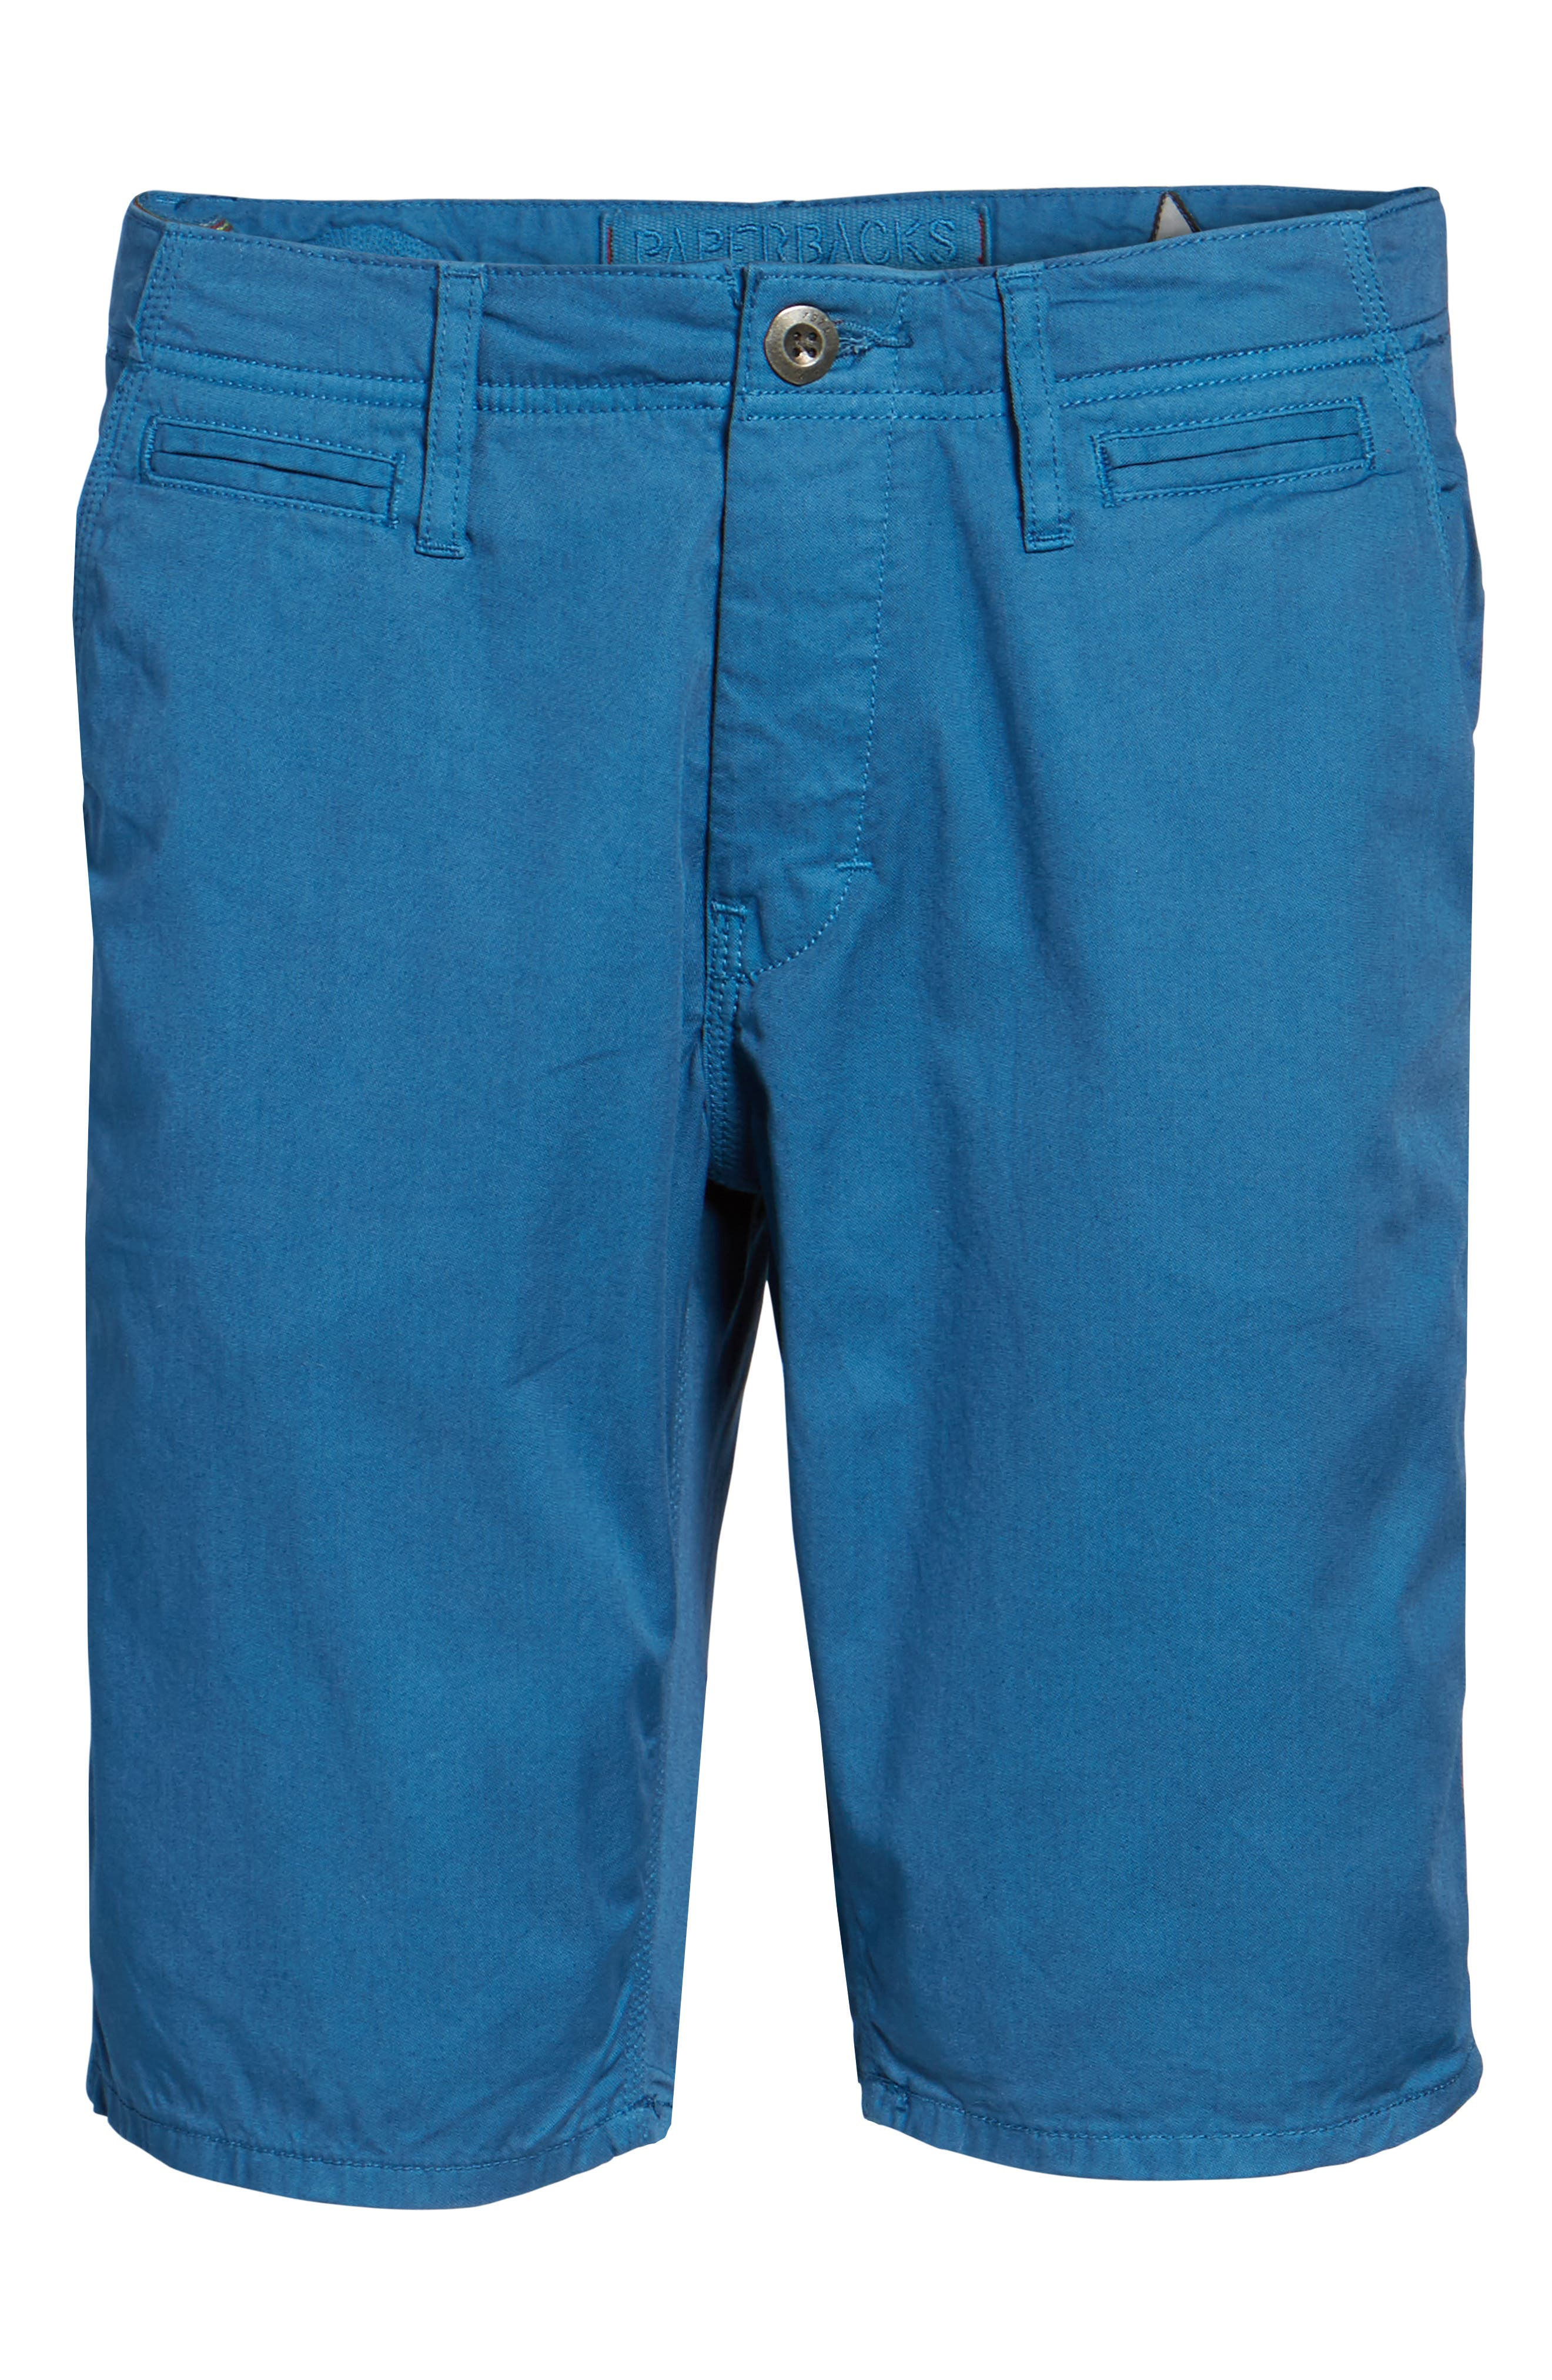 'Napa' Chino Shorts,                             Alternate thumbnail 72, color,